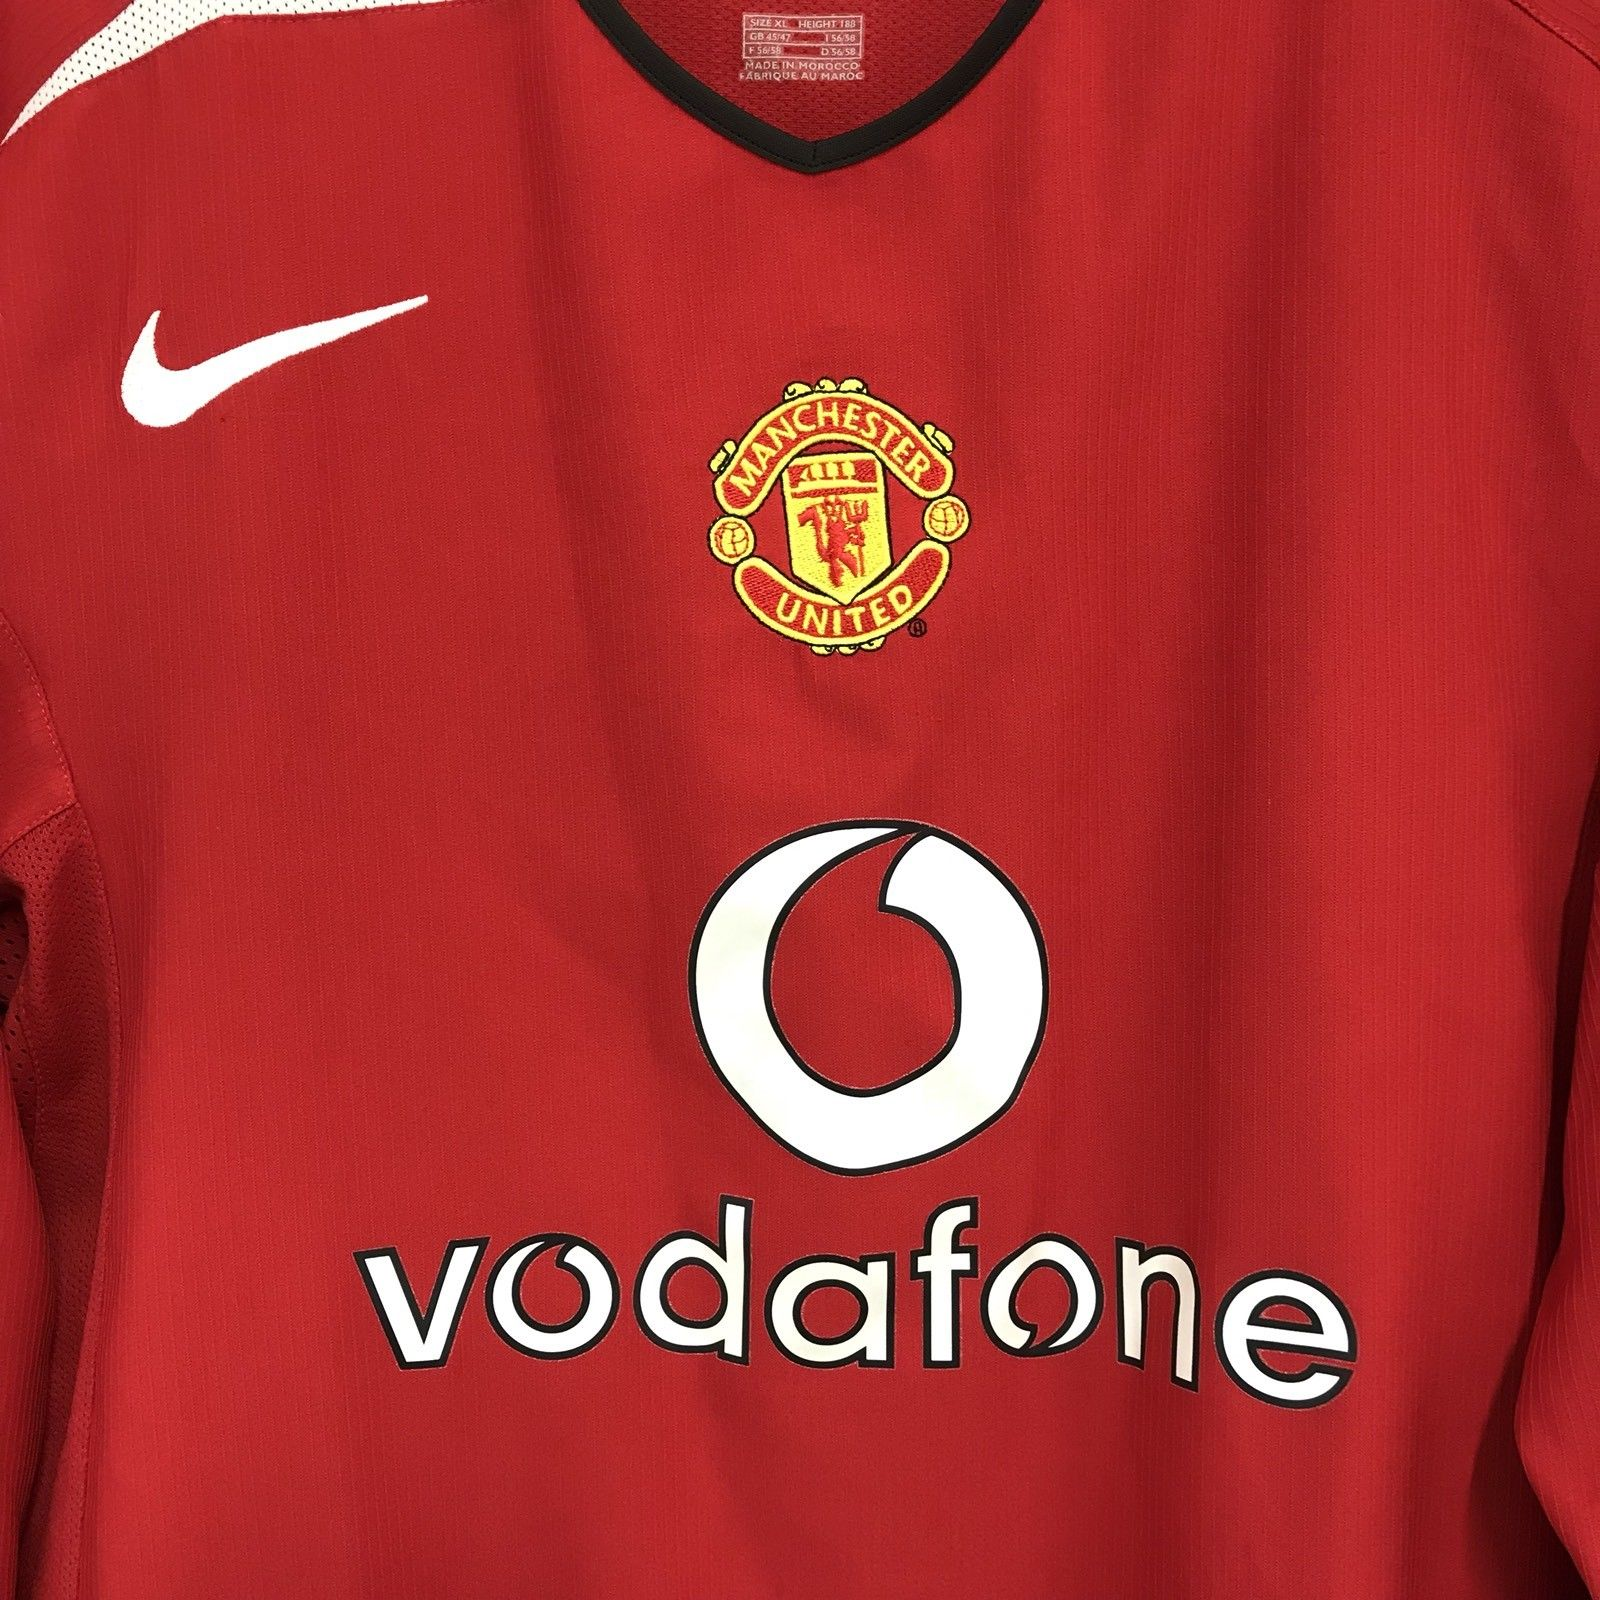 288339d80be Manchester United Long Sleeve Football Shirt 2004 06 Adults XL Nike. 🔍.  instock